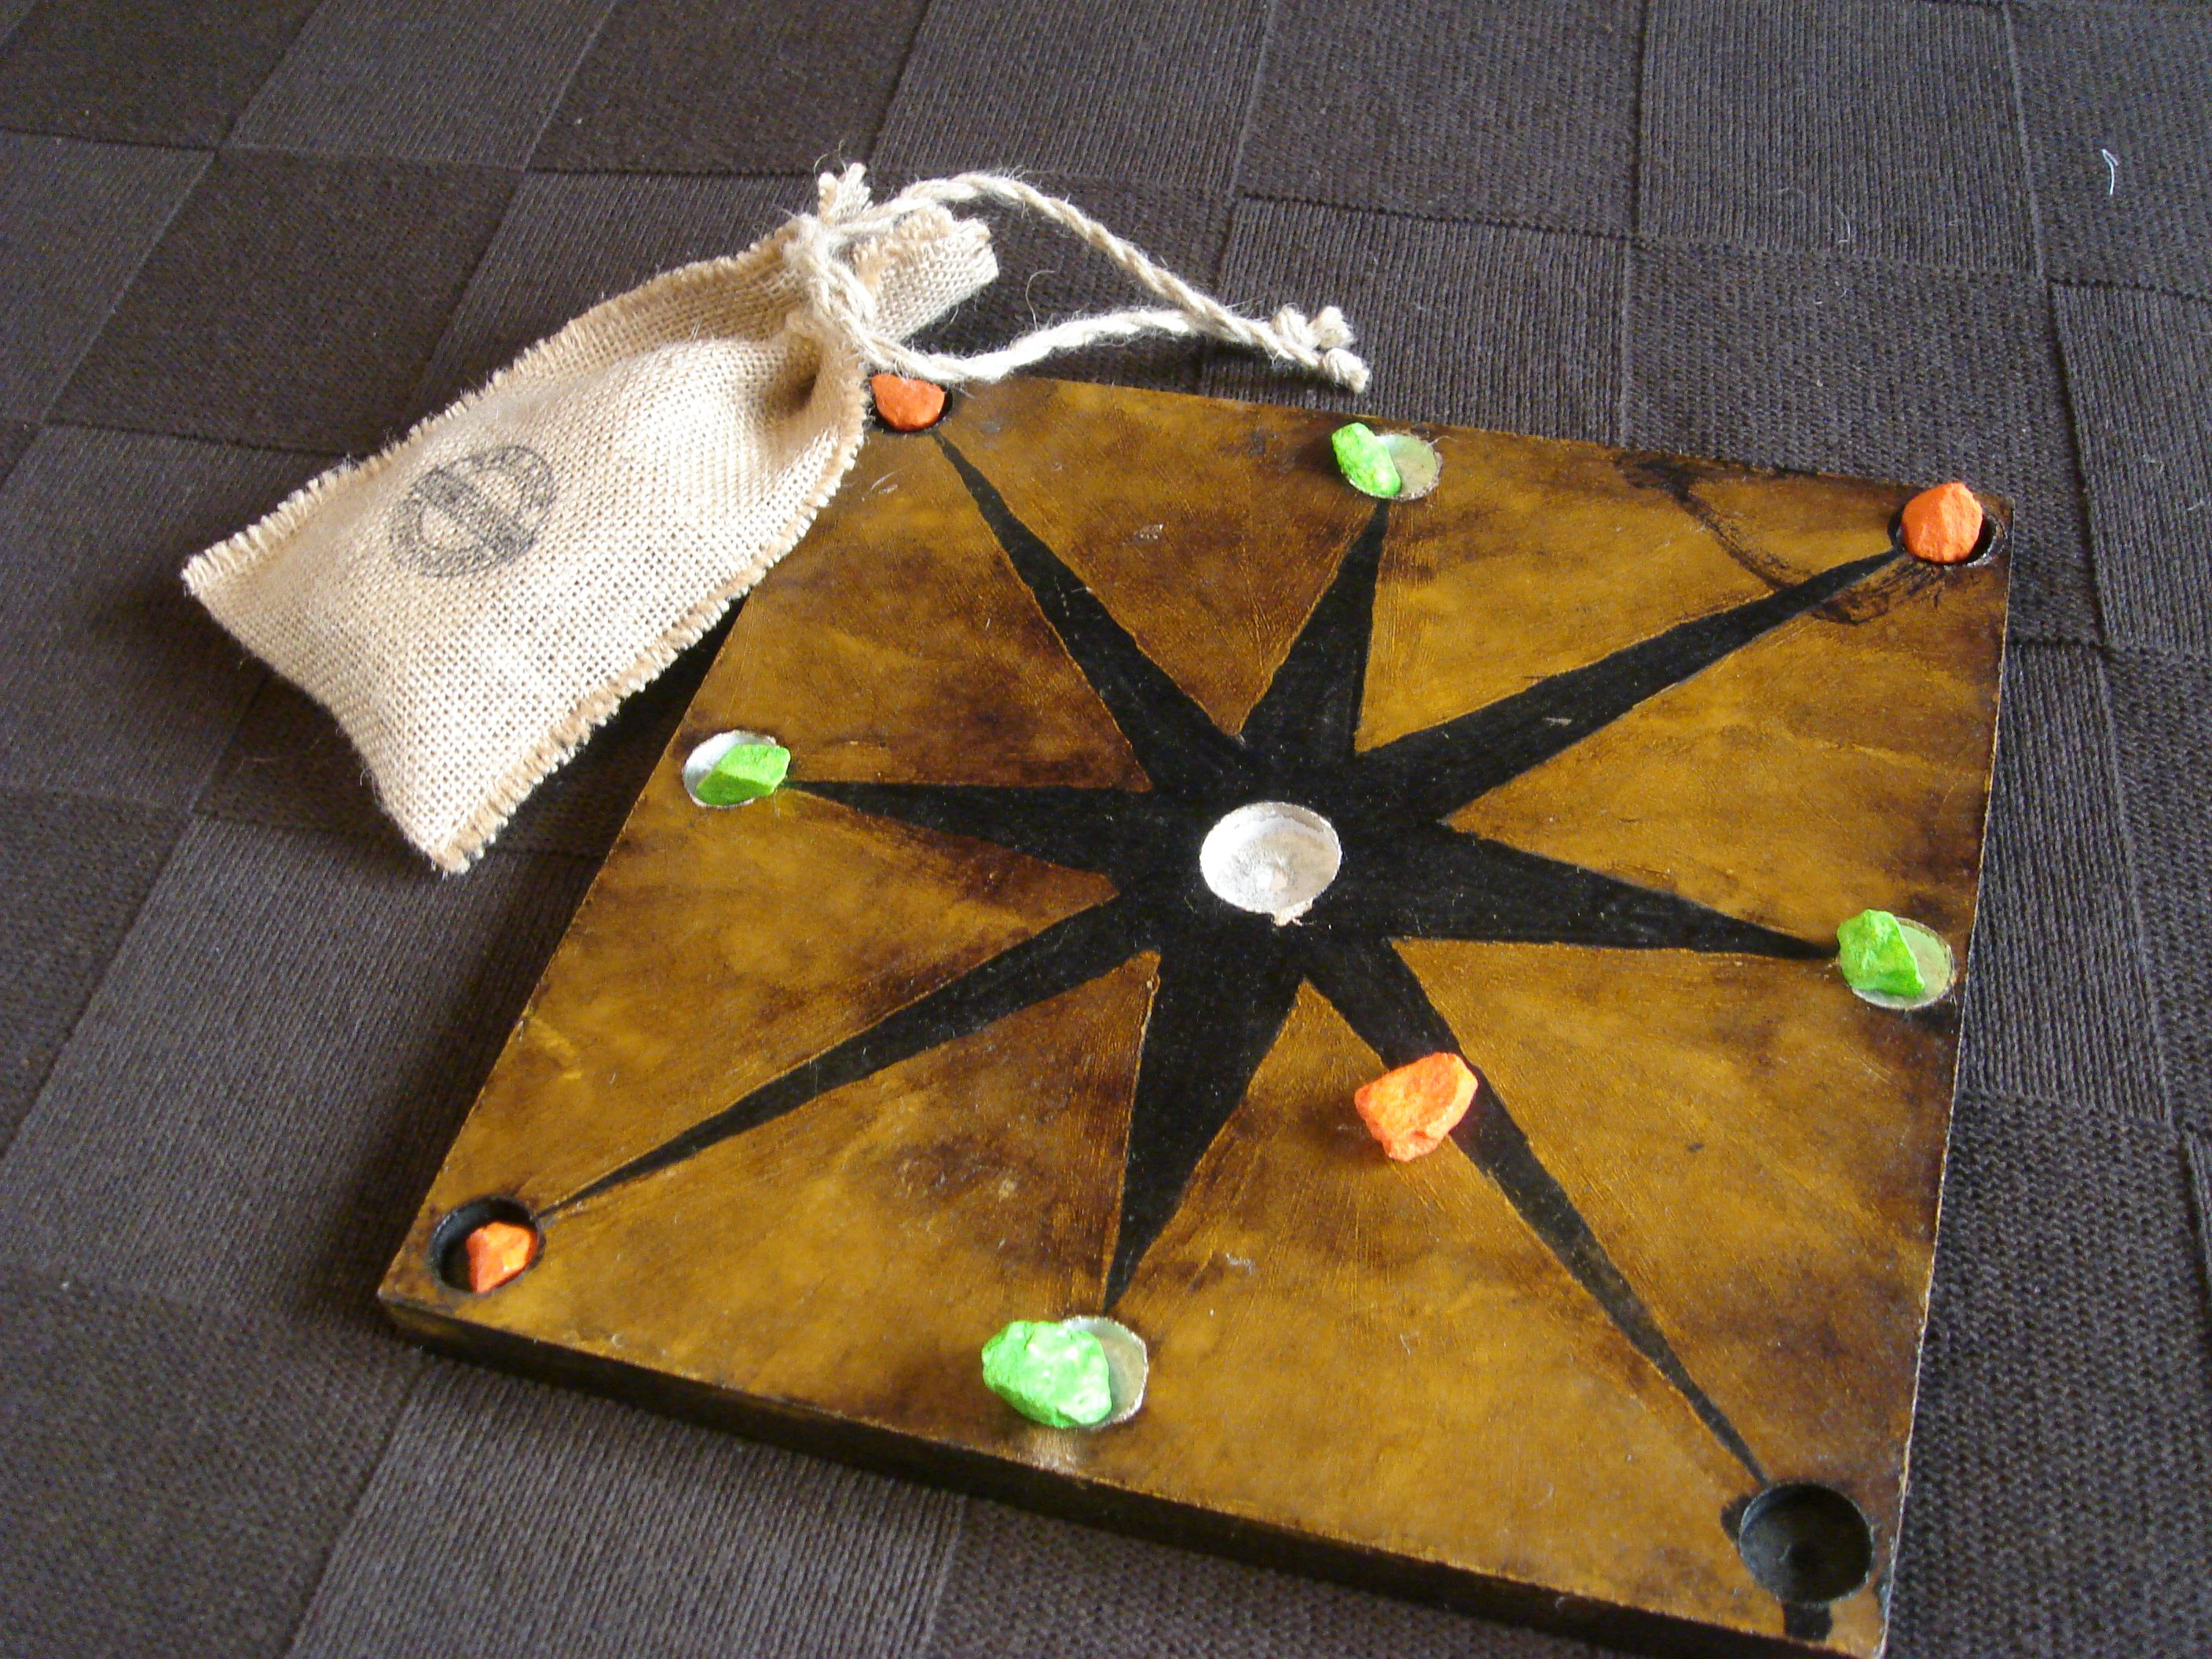 This lovely mu-torere board very much resembles an authentic one I've seen in a book (https://tallerludonauta.wordpress.com/2012/10/24/bagh-chal/?utm_content=buffer24a14&utm_medium=social&utm_source=pinterest.com&utm_campaign=buffer)